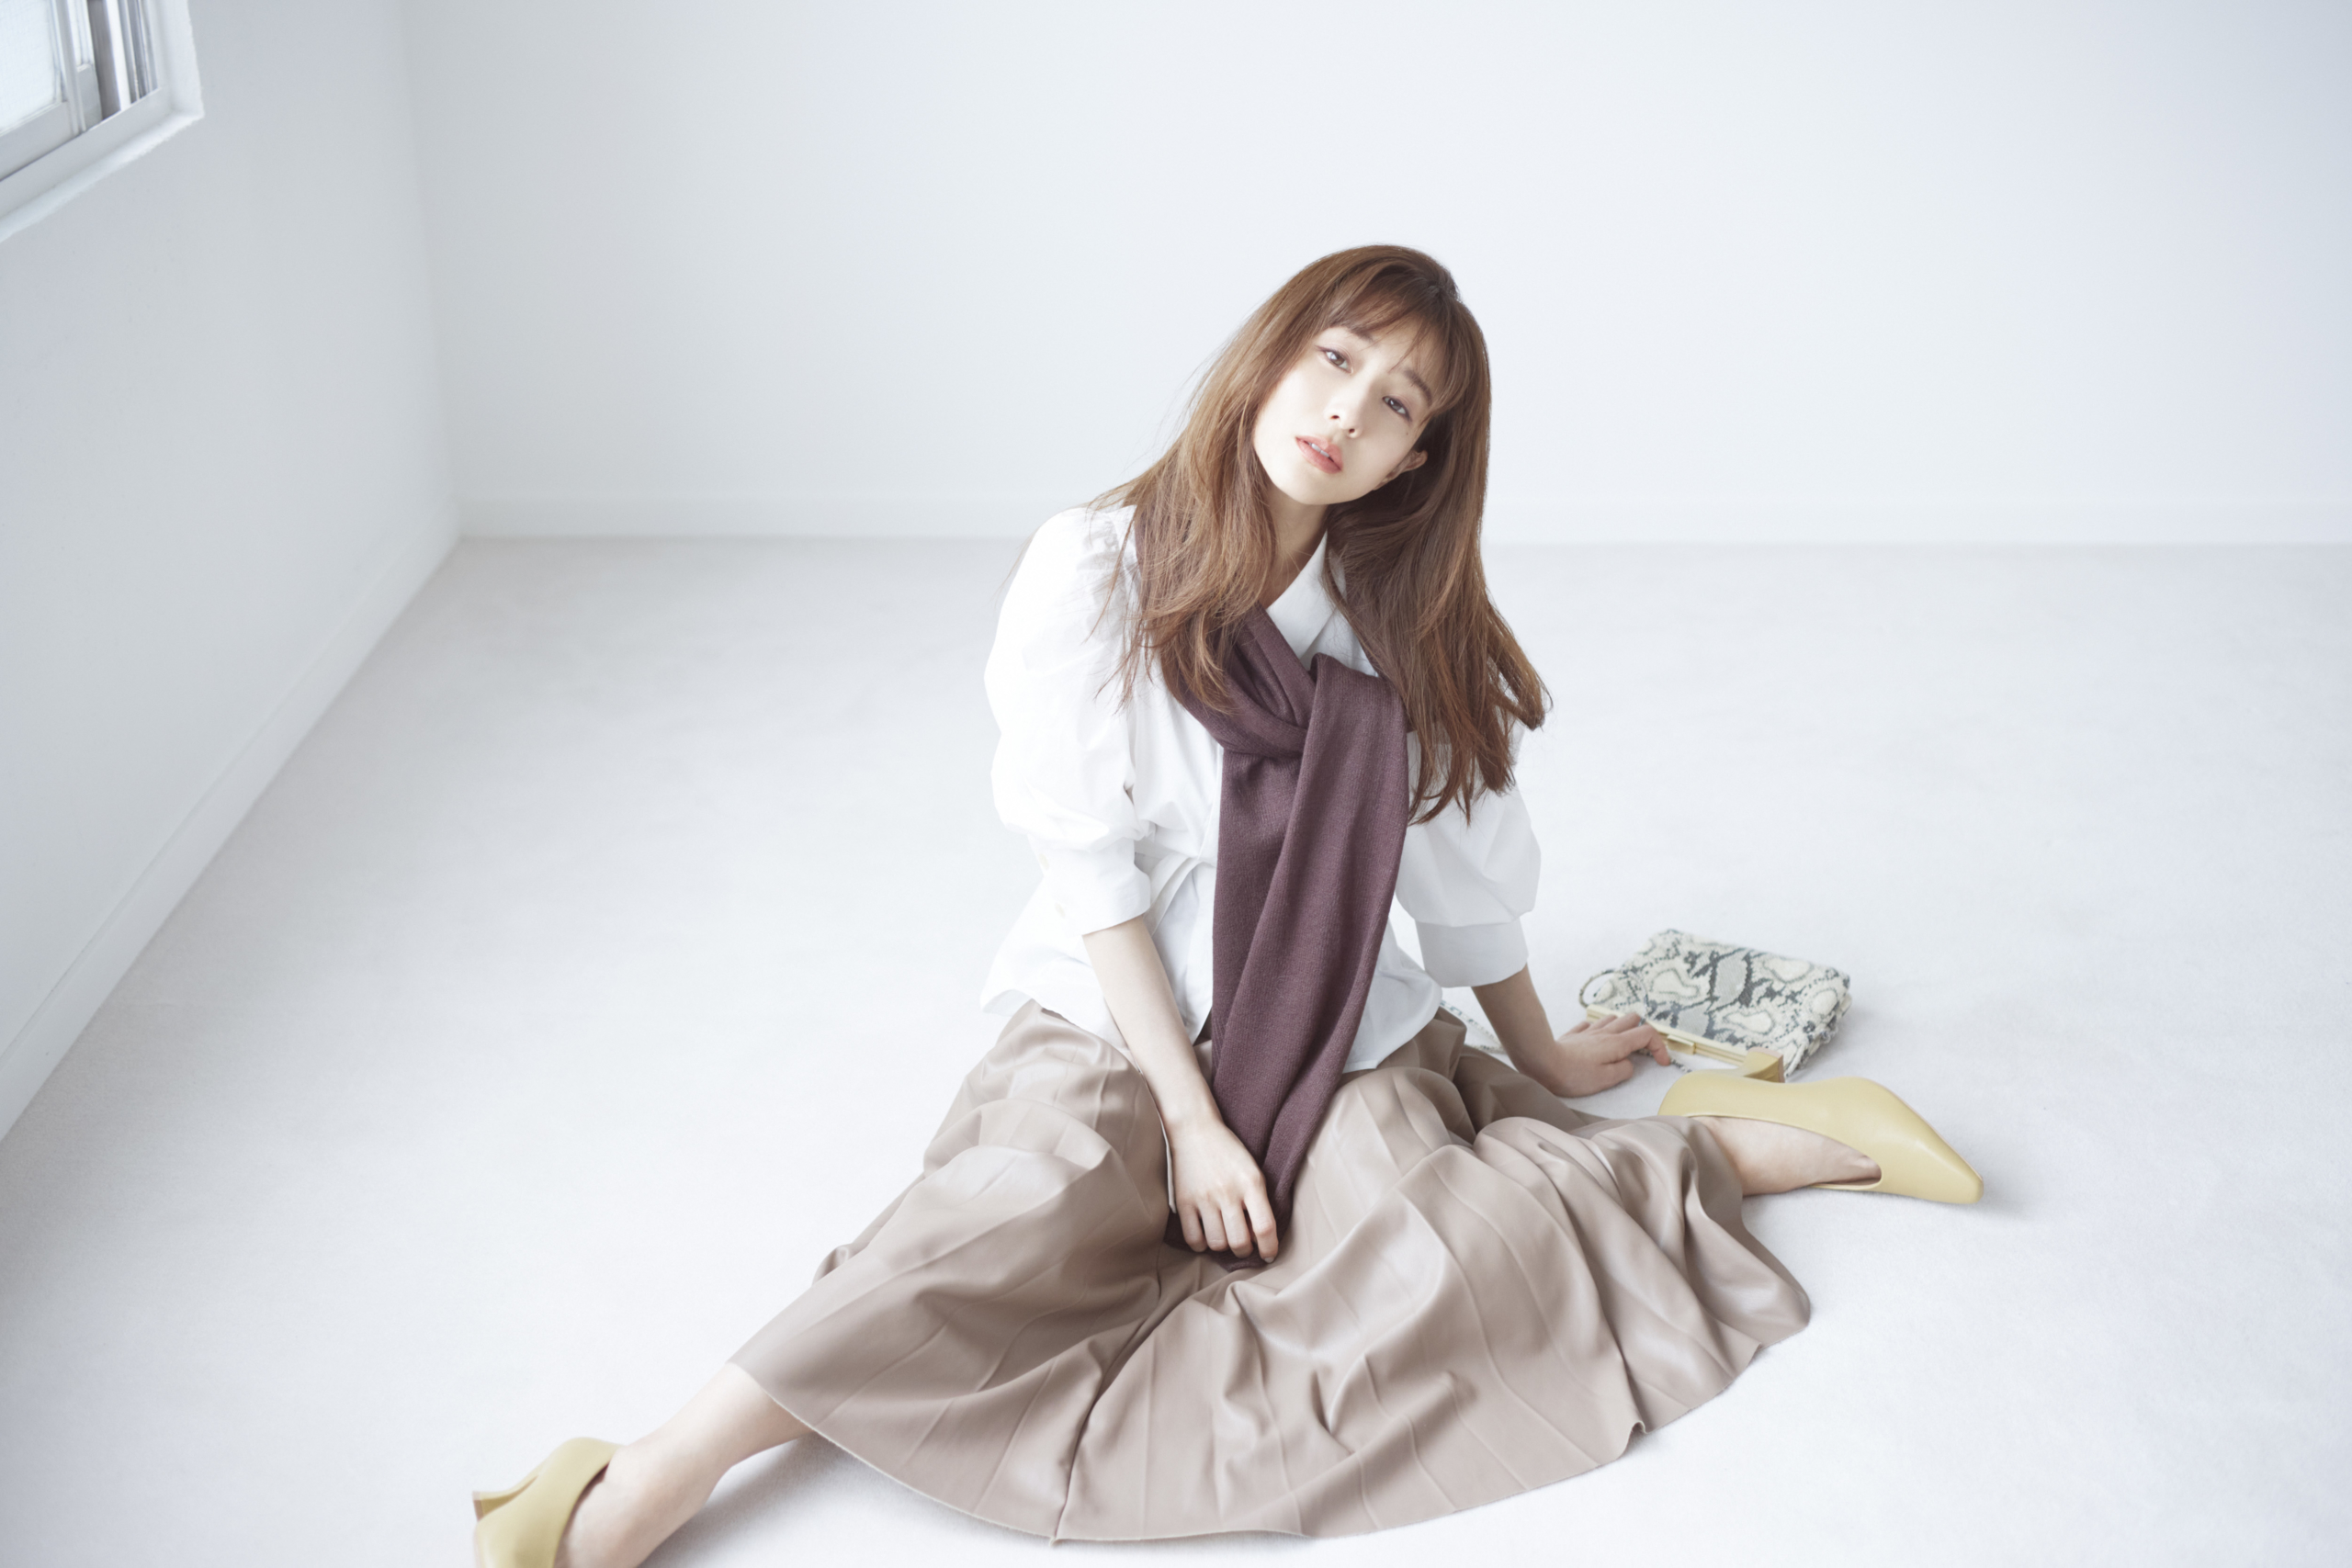 New experience, New autumn with Minami Tanaka 新たな季節、私に寄り添うもの